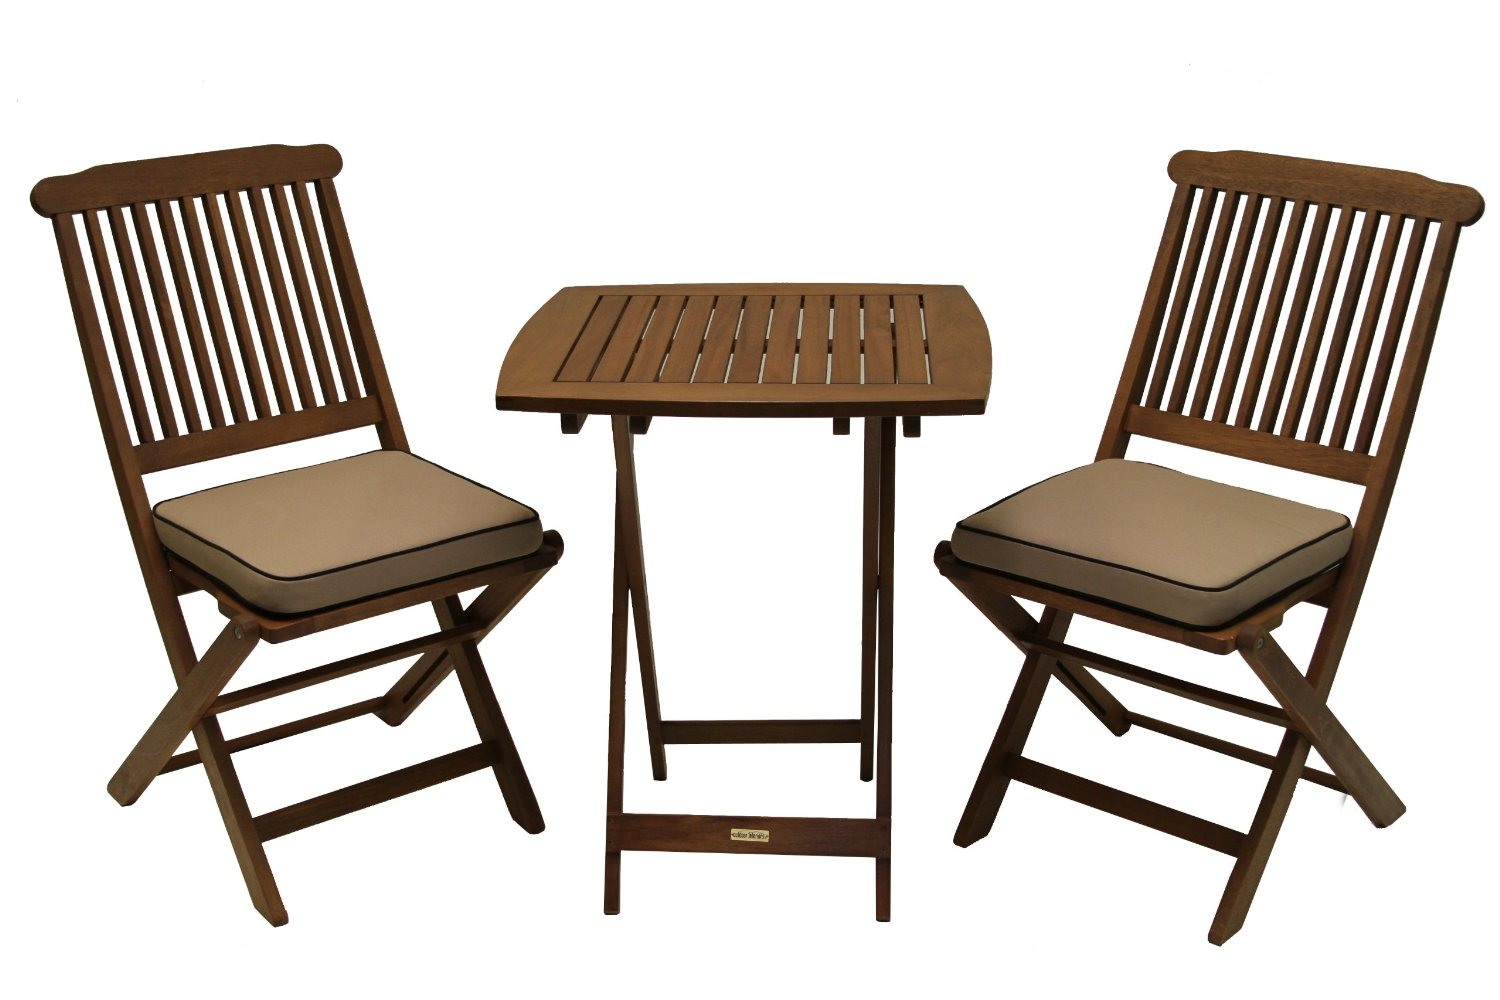 Delightful 3Piece Patio Furniture Sets Archives Best Patio Furniture Sets